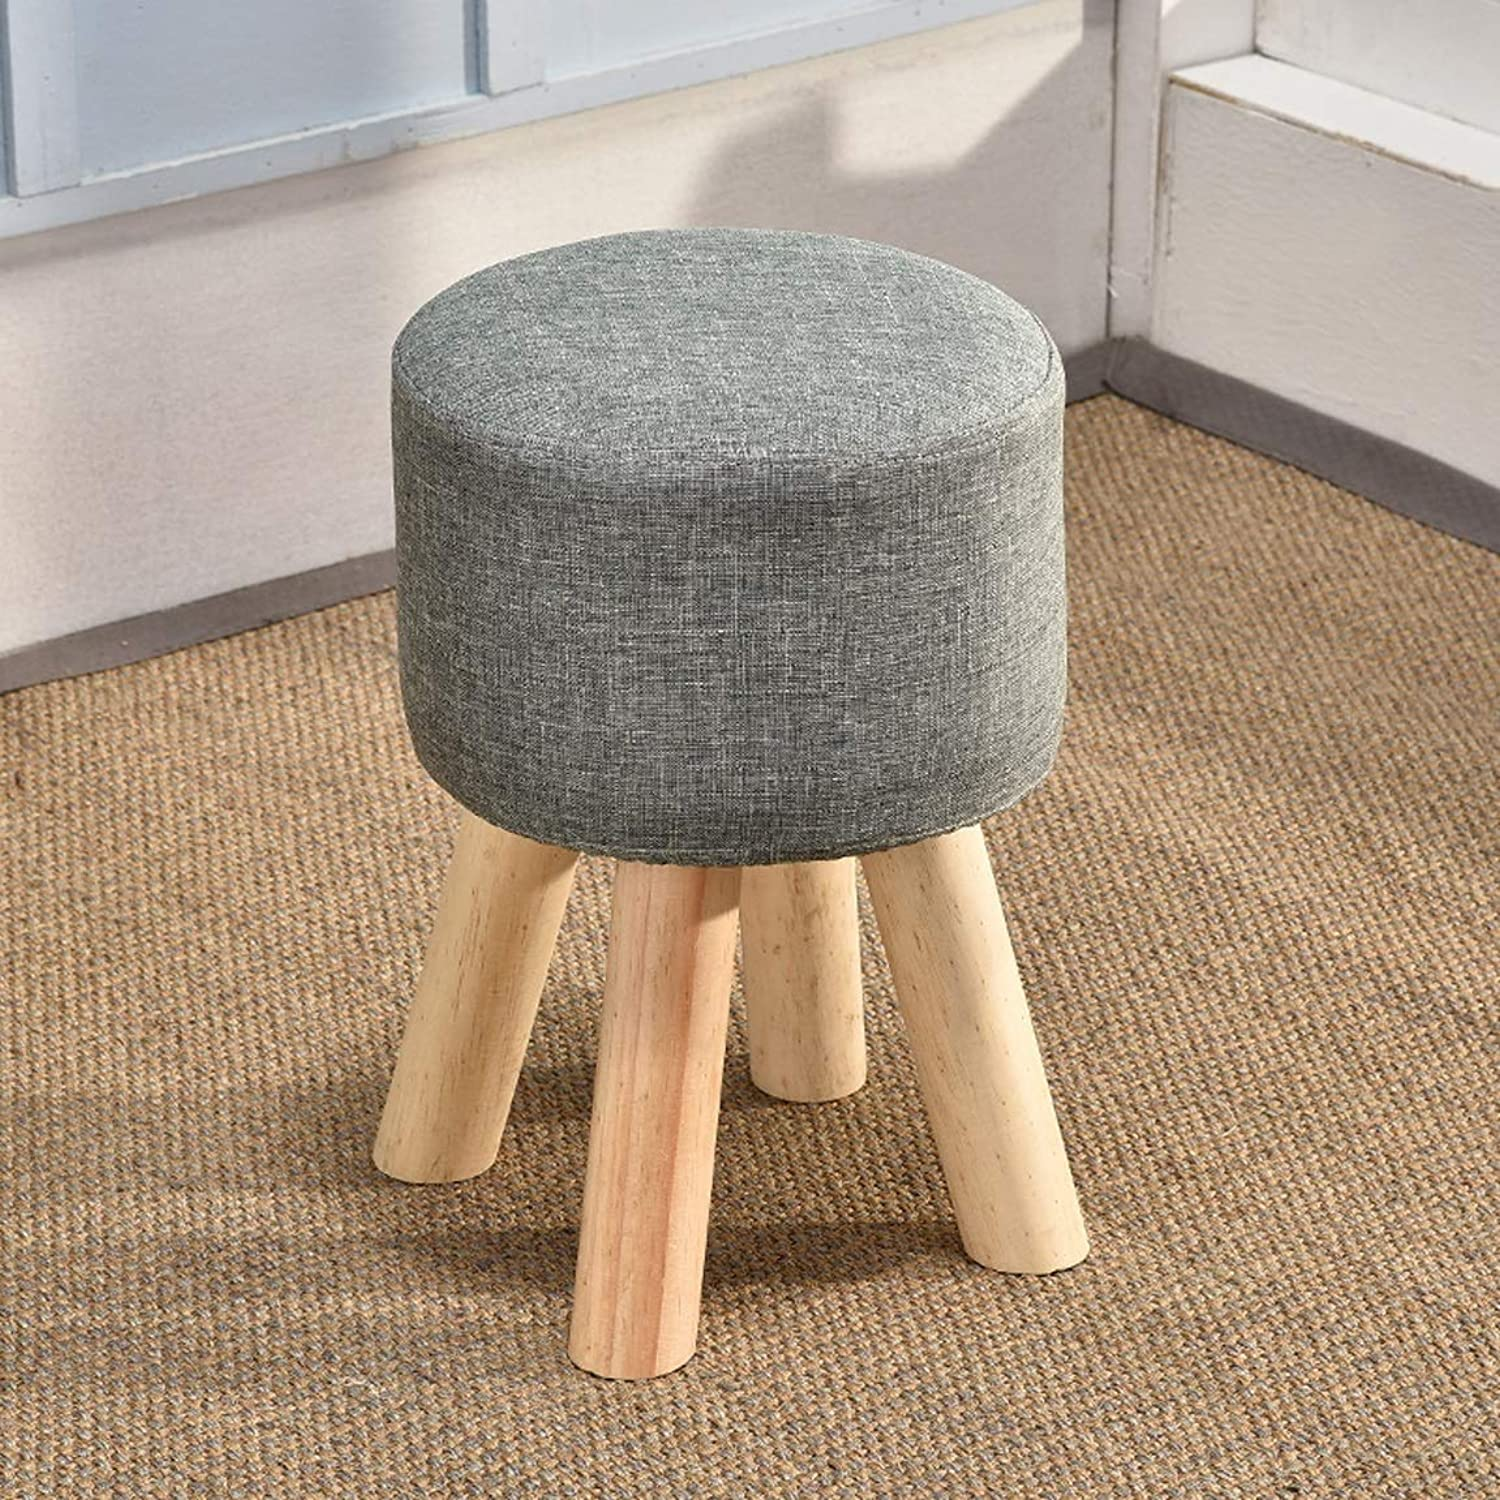 HZB Small Wooden Stools, Living Room, shoes Stools, Fashionable Adult Stools, Sofa Stools, Stools Stools (color   Grey Green)